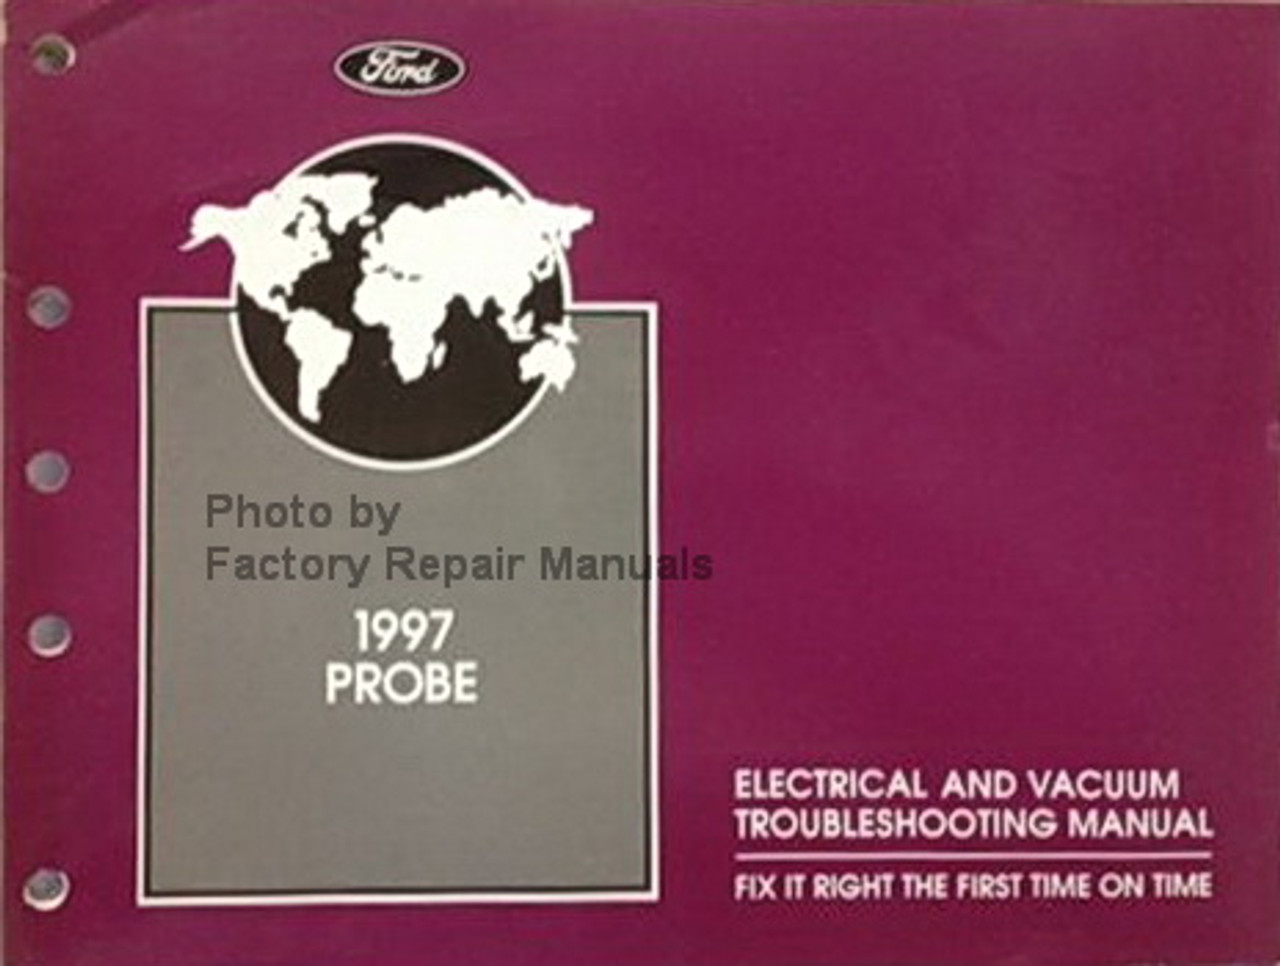 ford probe wiring diagrams 1997 ford probe electrical   vacuum troubleshooting manual wiring  1997 ford probe electrical   vacuum